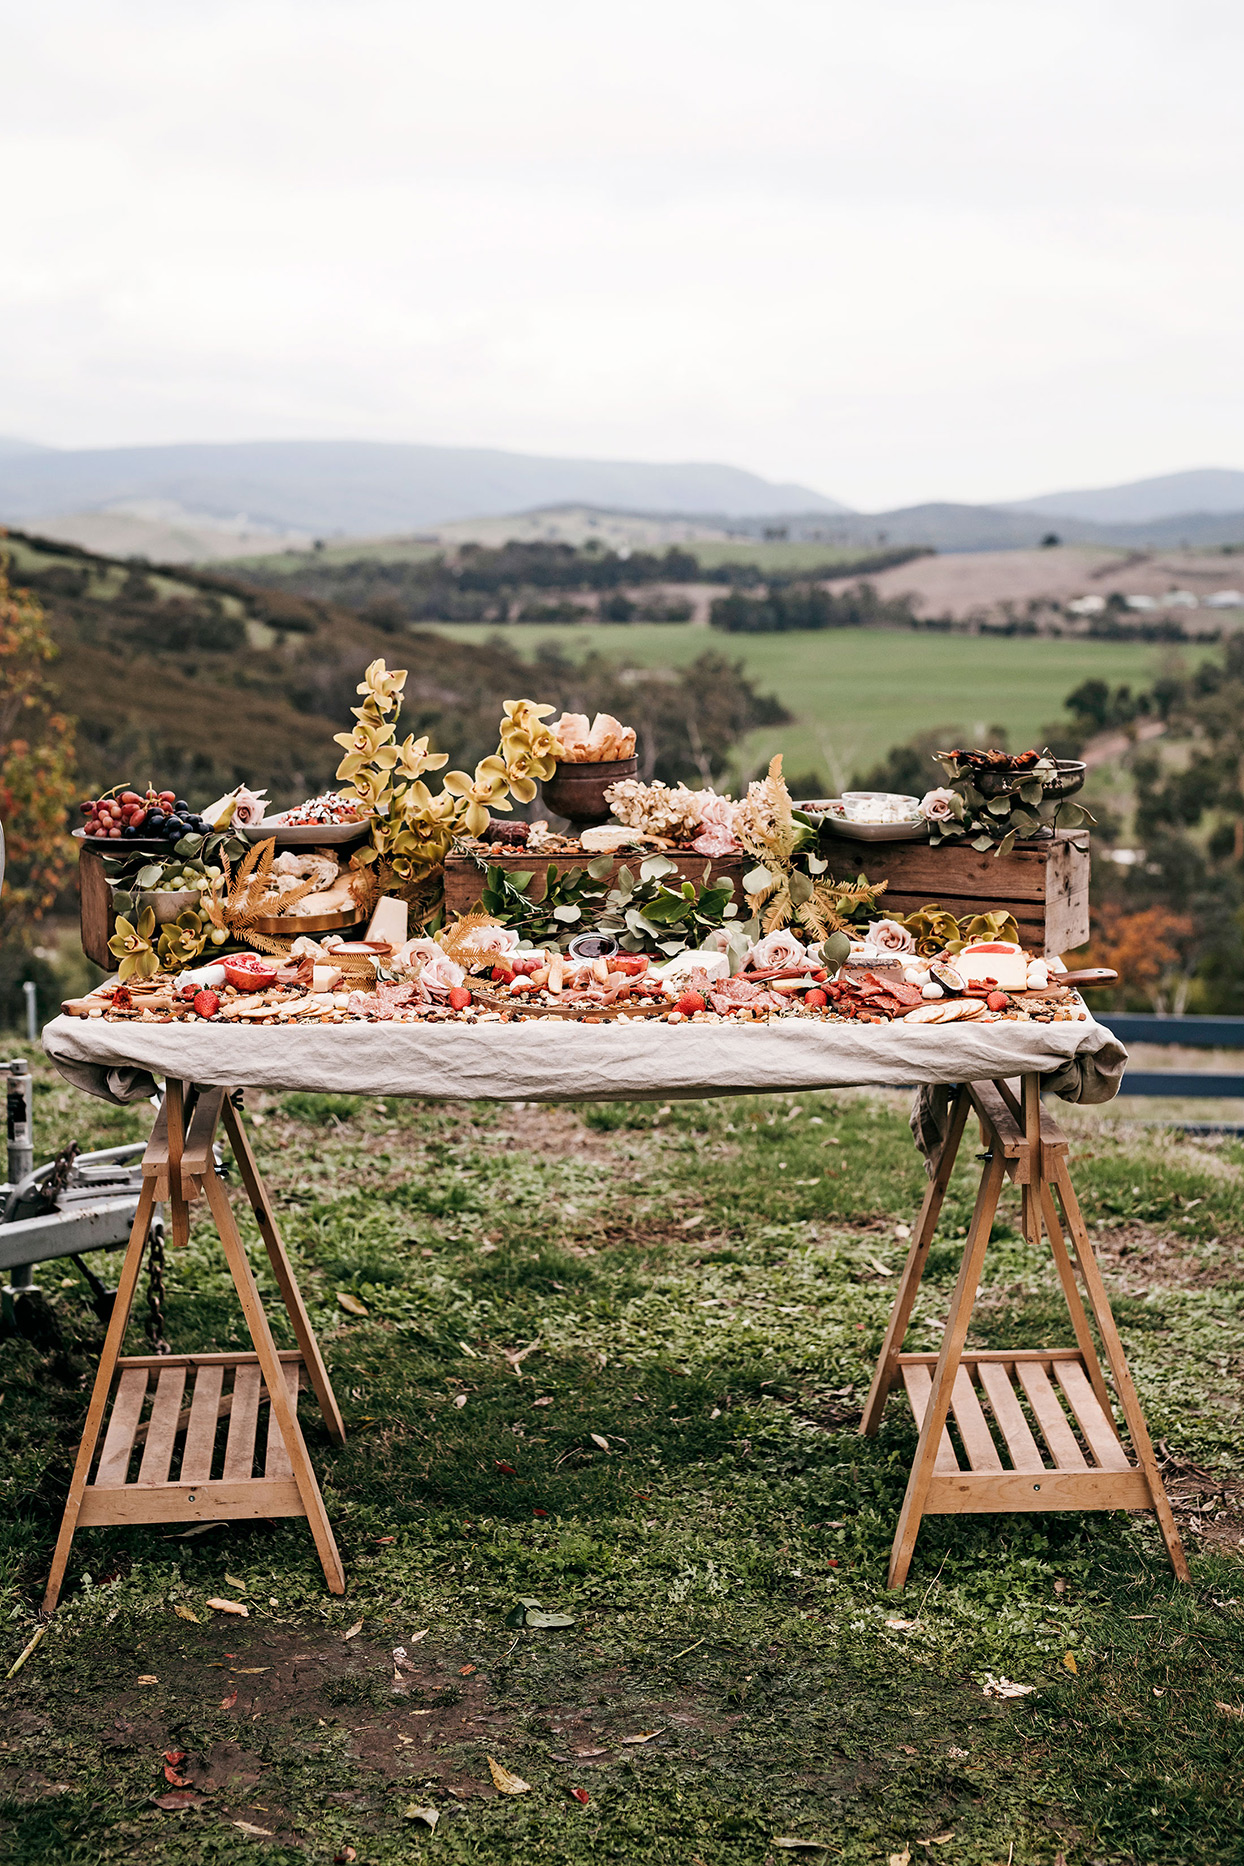 How to Keep Food Safe at Your Outdoor Wedding